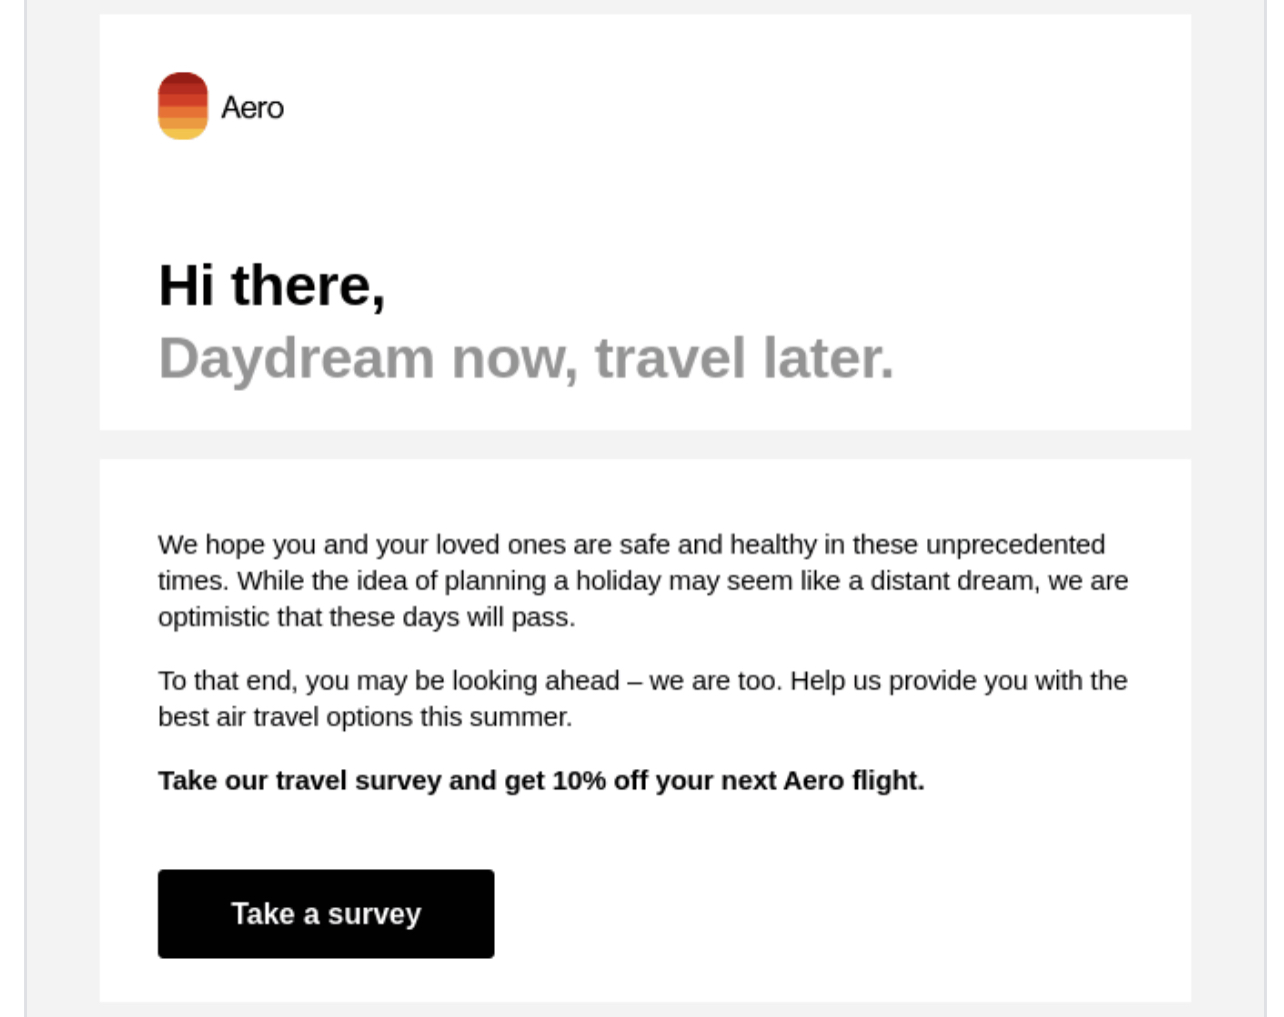 Digital Customer Experience: Email Survey Example